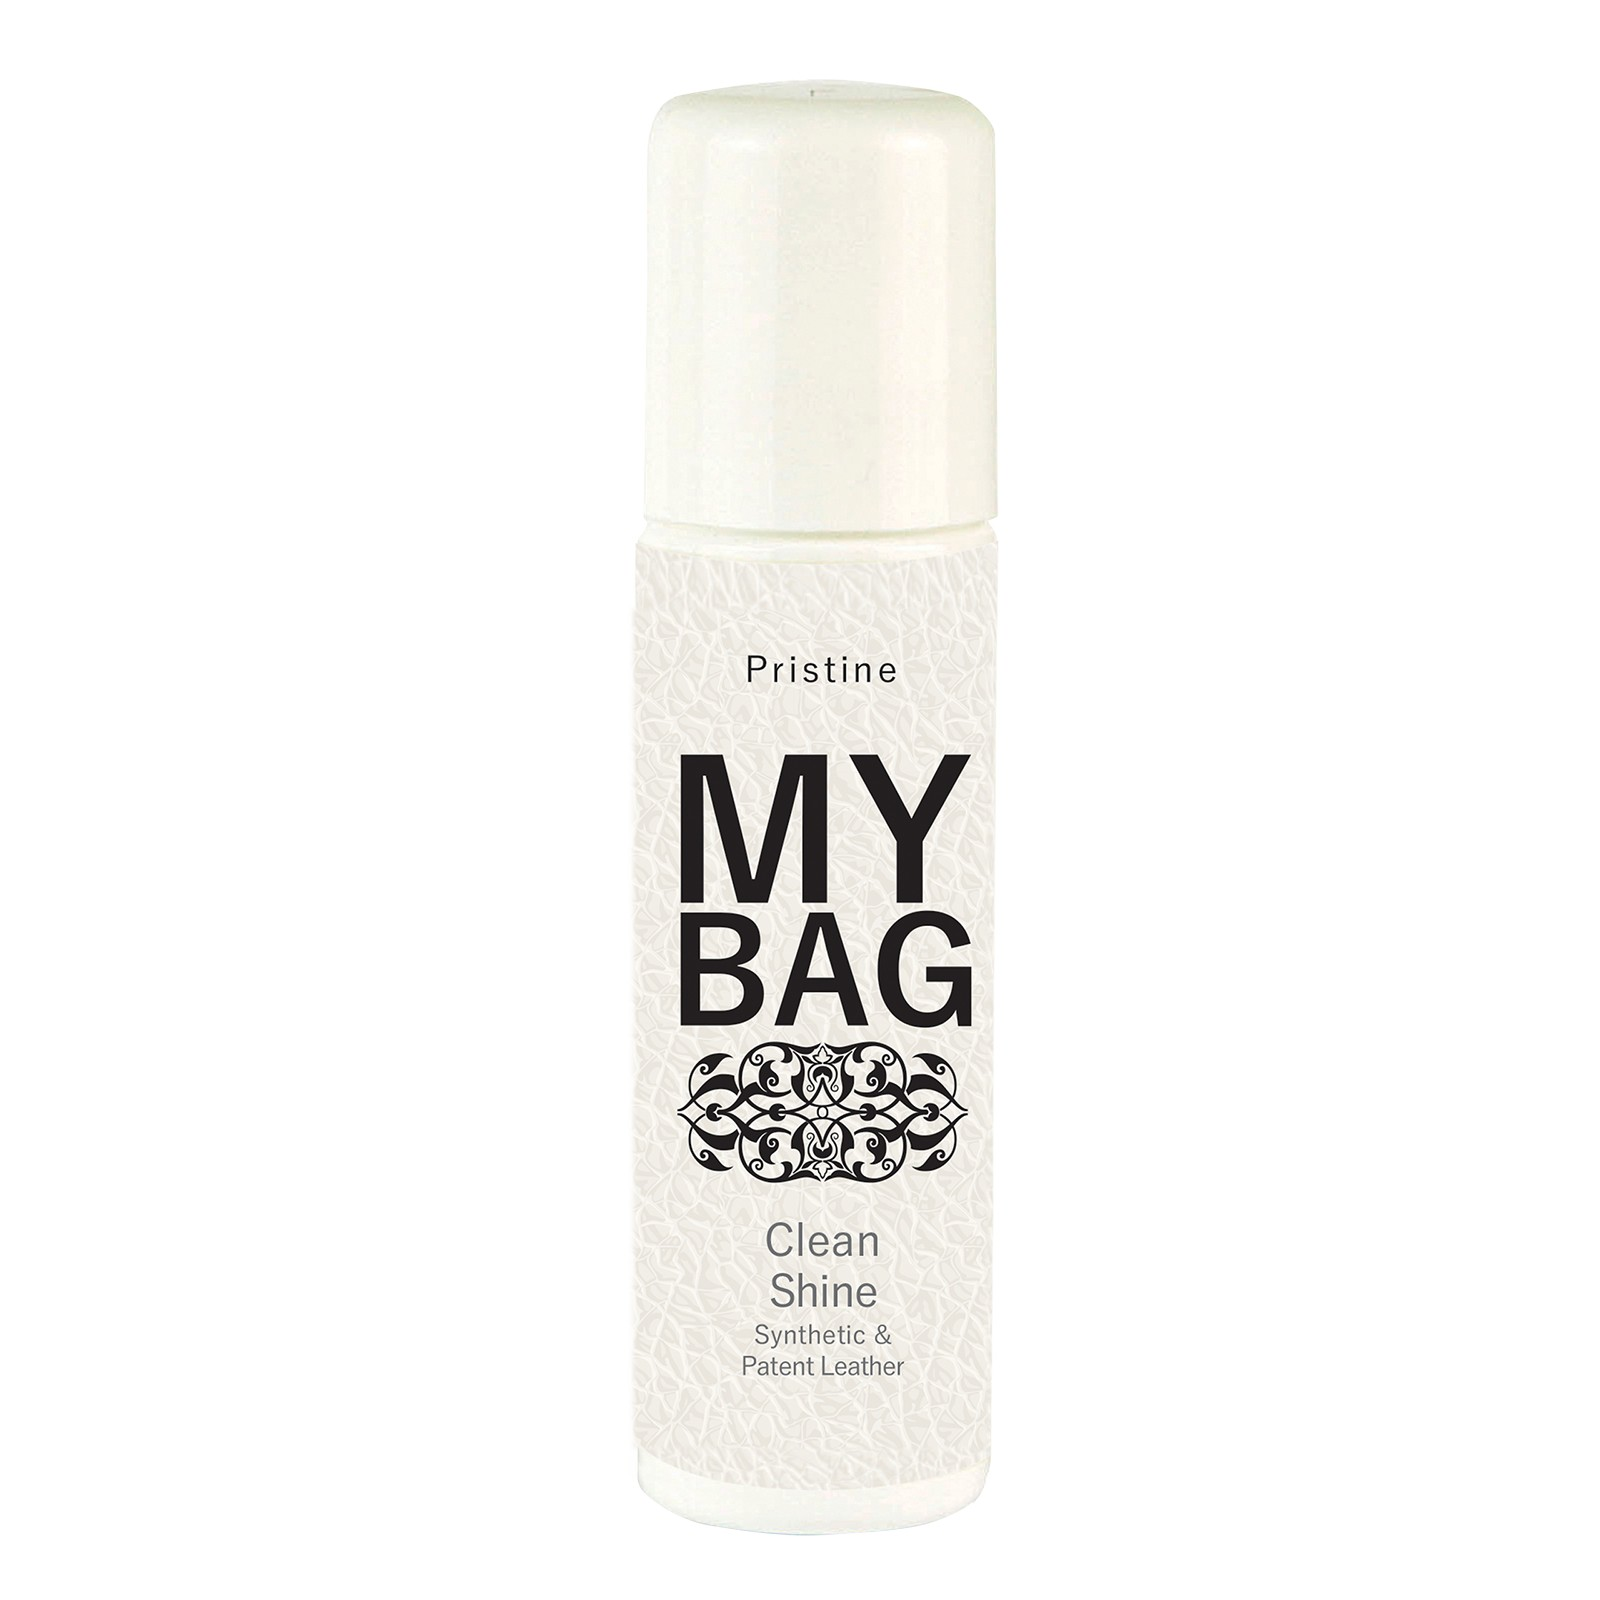 My Bag Synthetic & Patent Leather Pristine